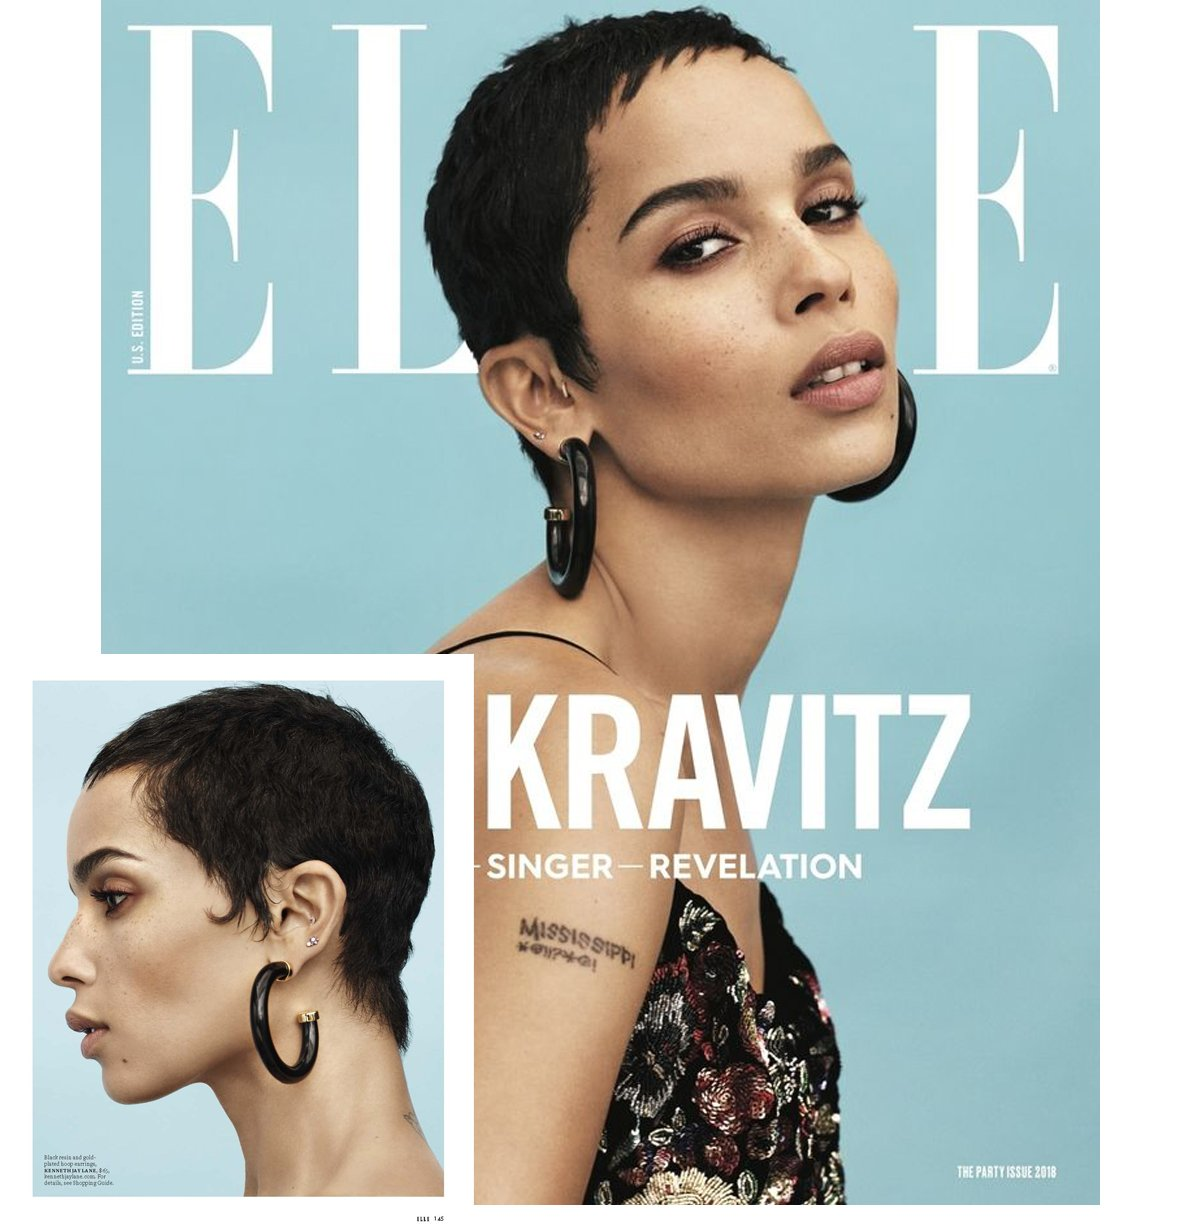 Zoe Kravitz in the Large Polished Gold Ends Hoop Pierced Earrings